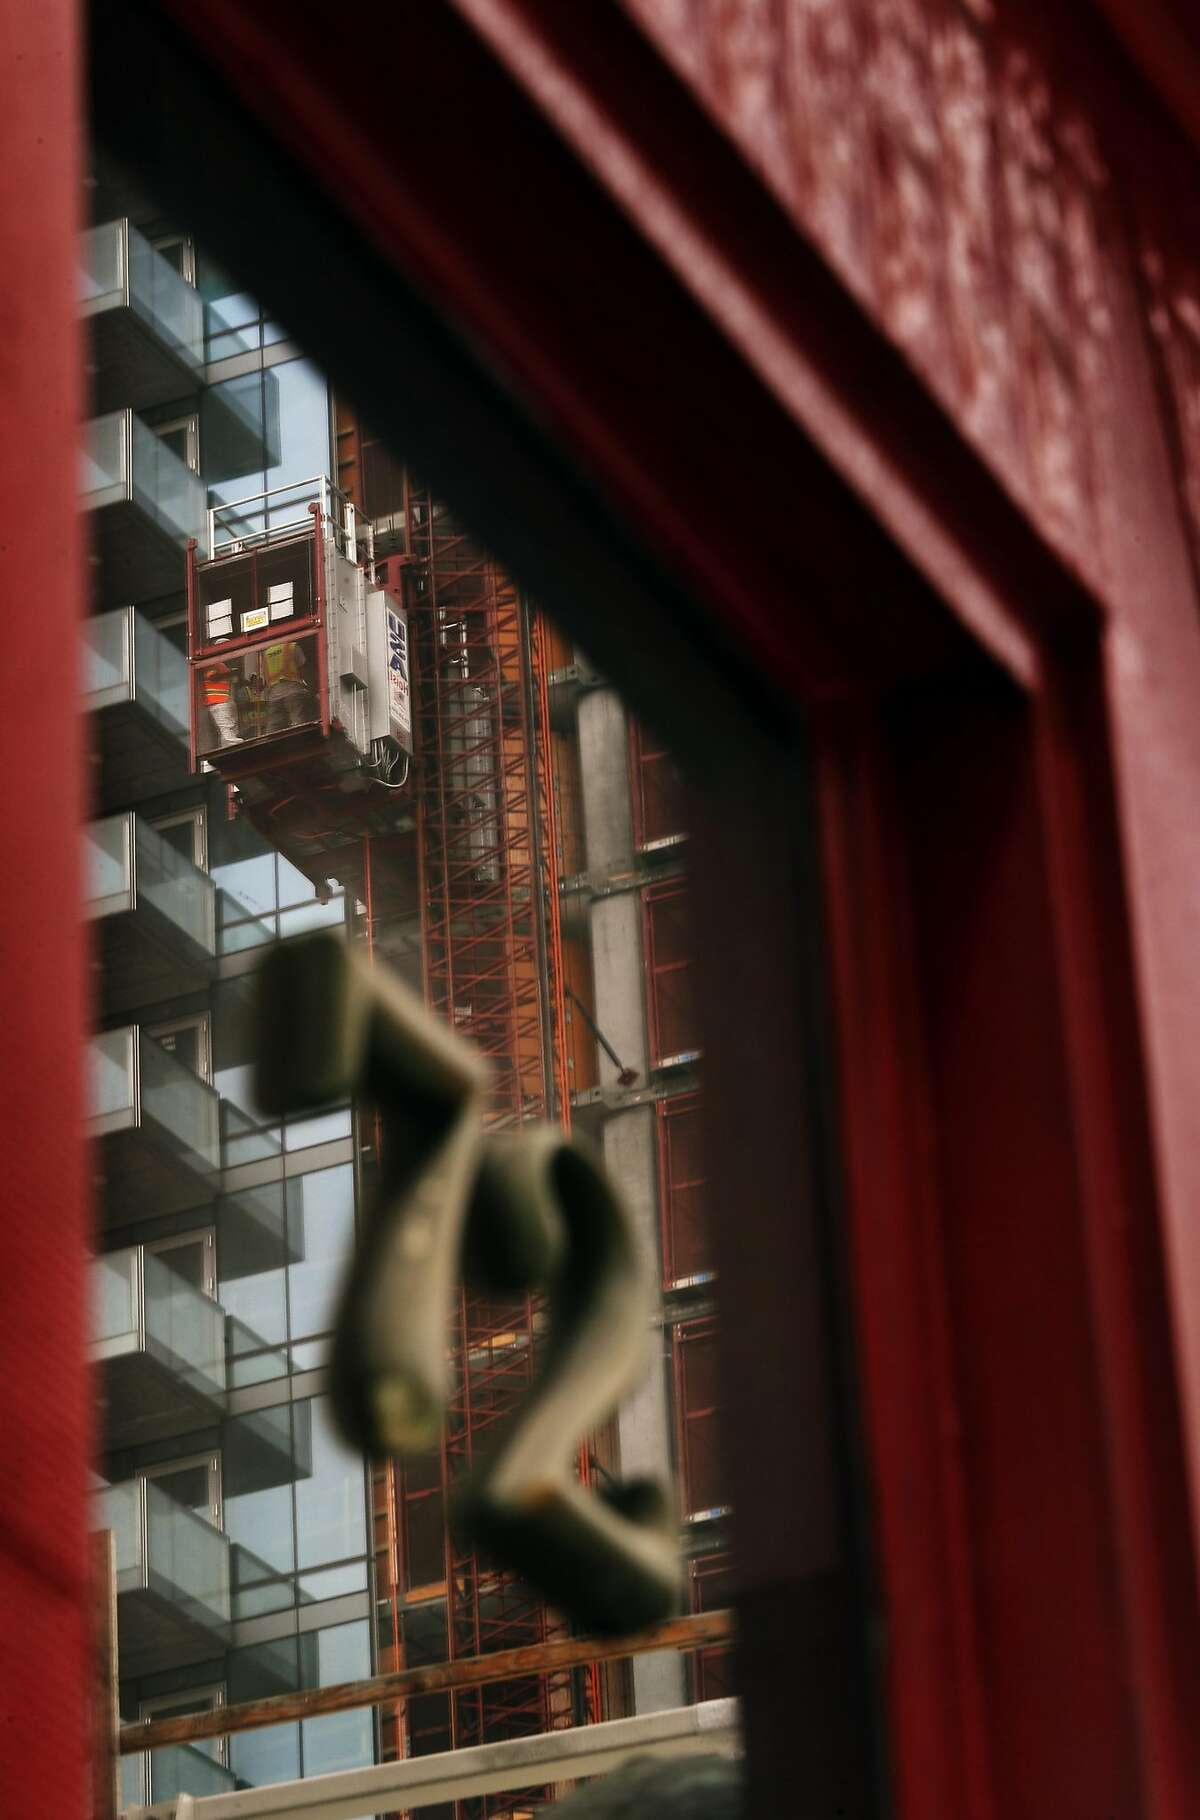 A construction elevator is seen reflected in the window of Brizart and Young Sheet Metal on Tehama Street in San Francisco, Calif., on Thursday, August 10, 2017. The block of Tehama Street between 1st and 2nd Streets exemplifies the changes taking place south of Market Street as technology and high rise housing moves into the area.